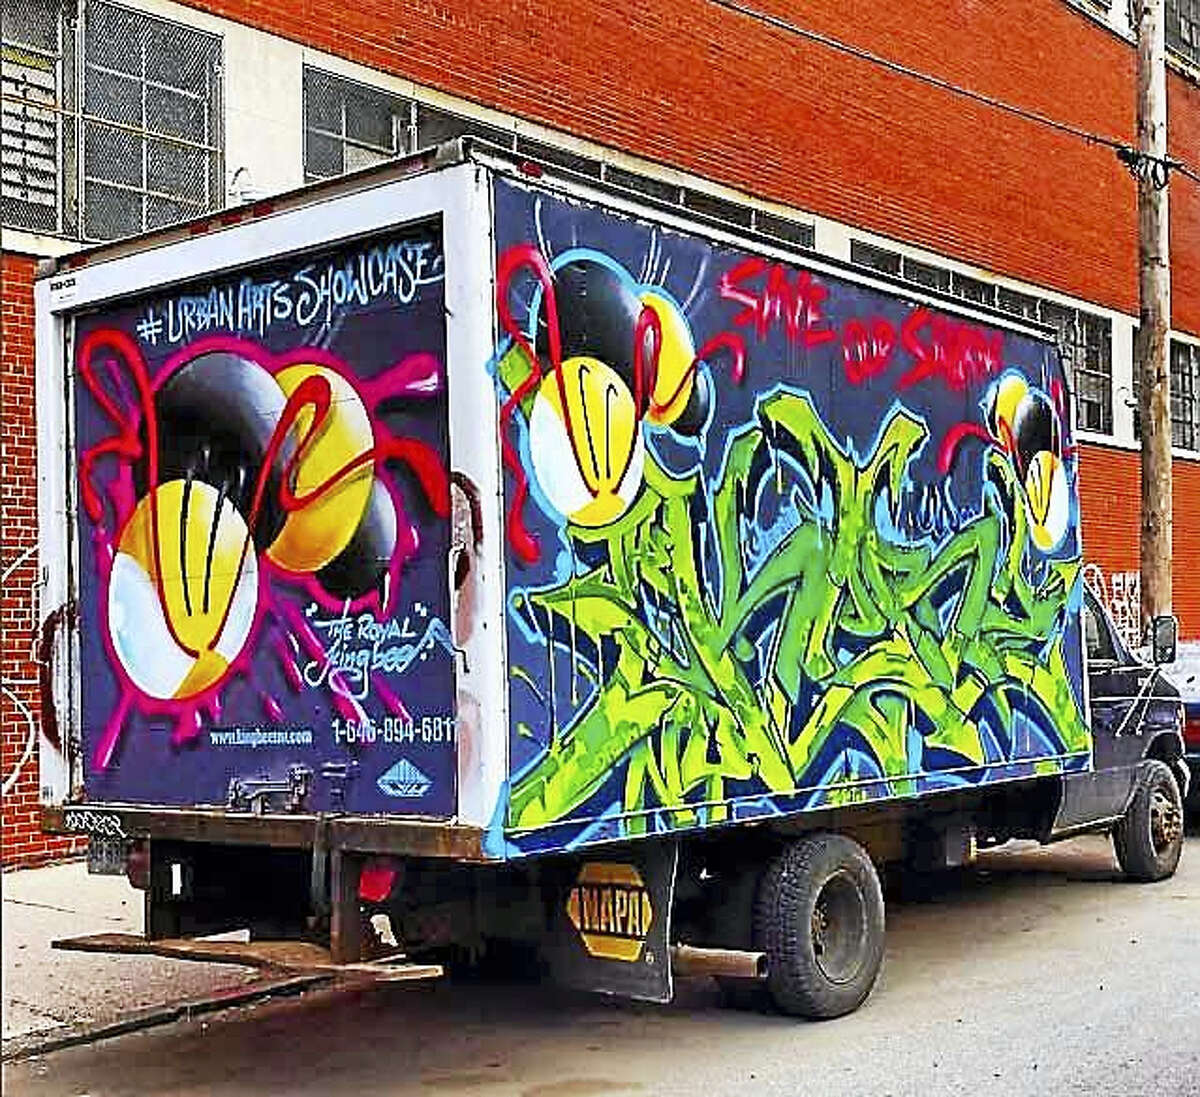 Royal KingBee's work is seen on a truck.